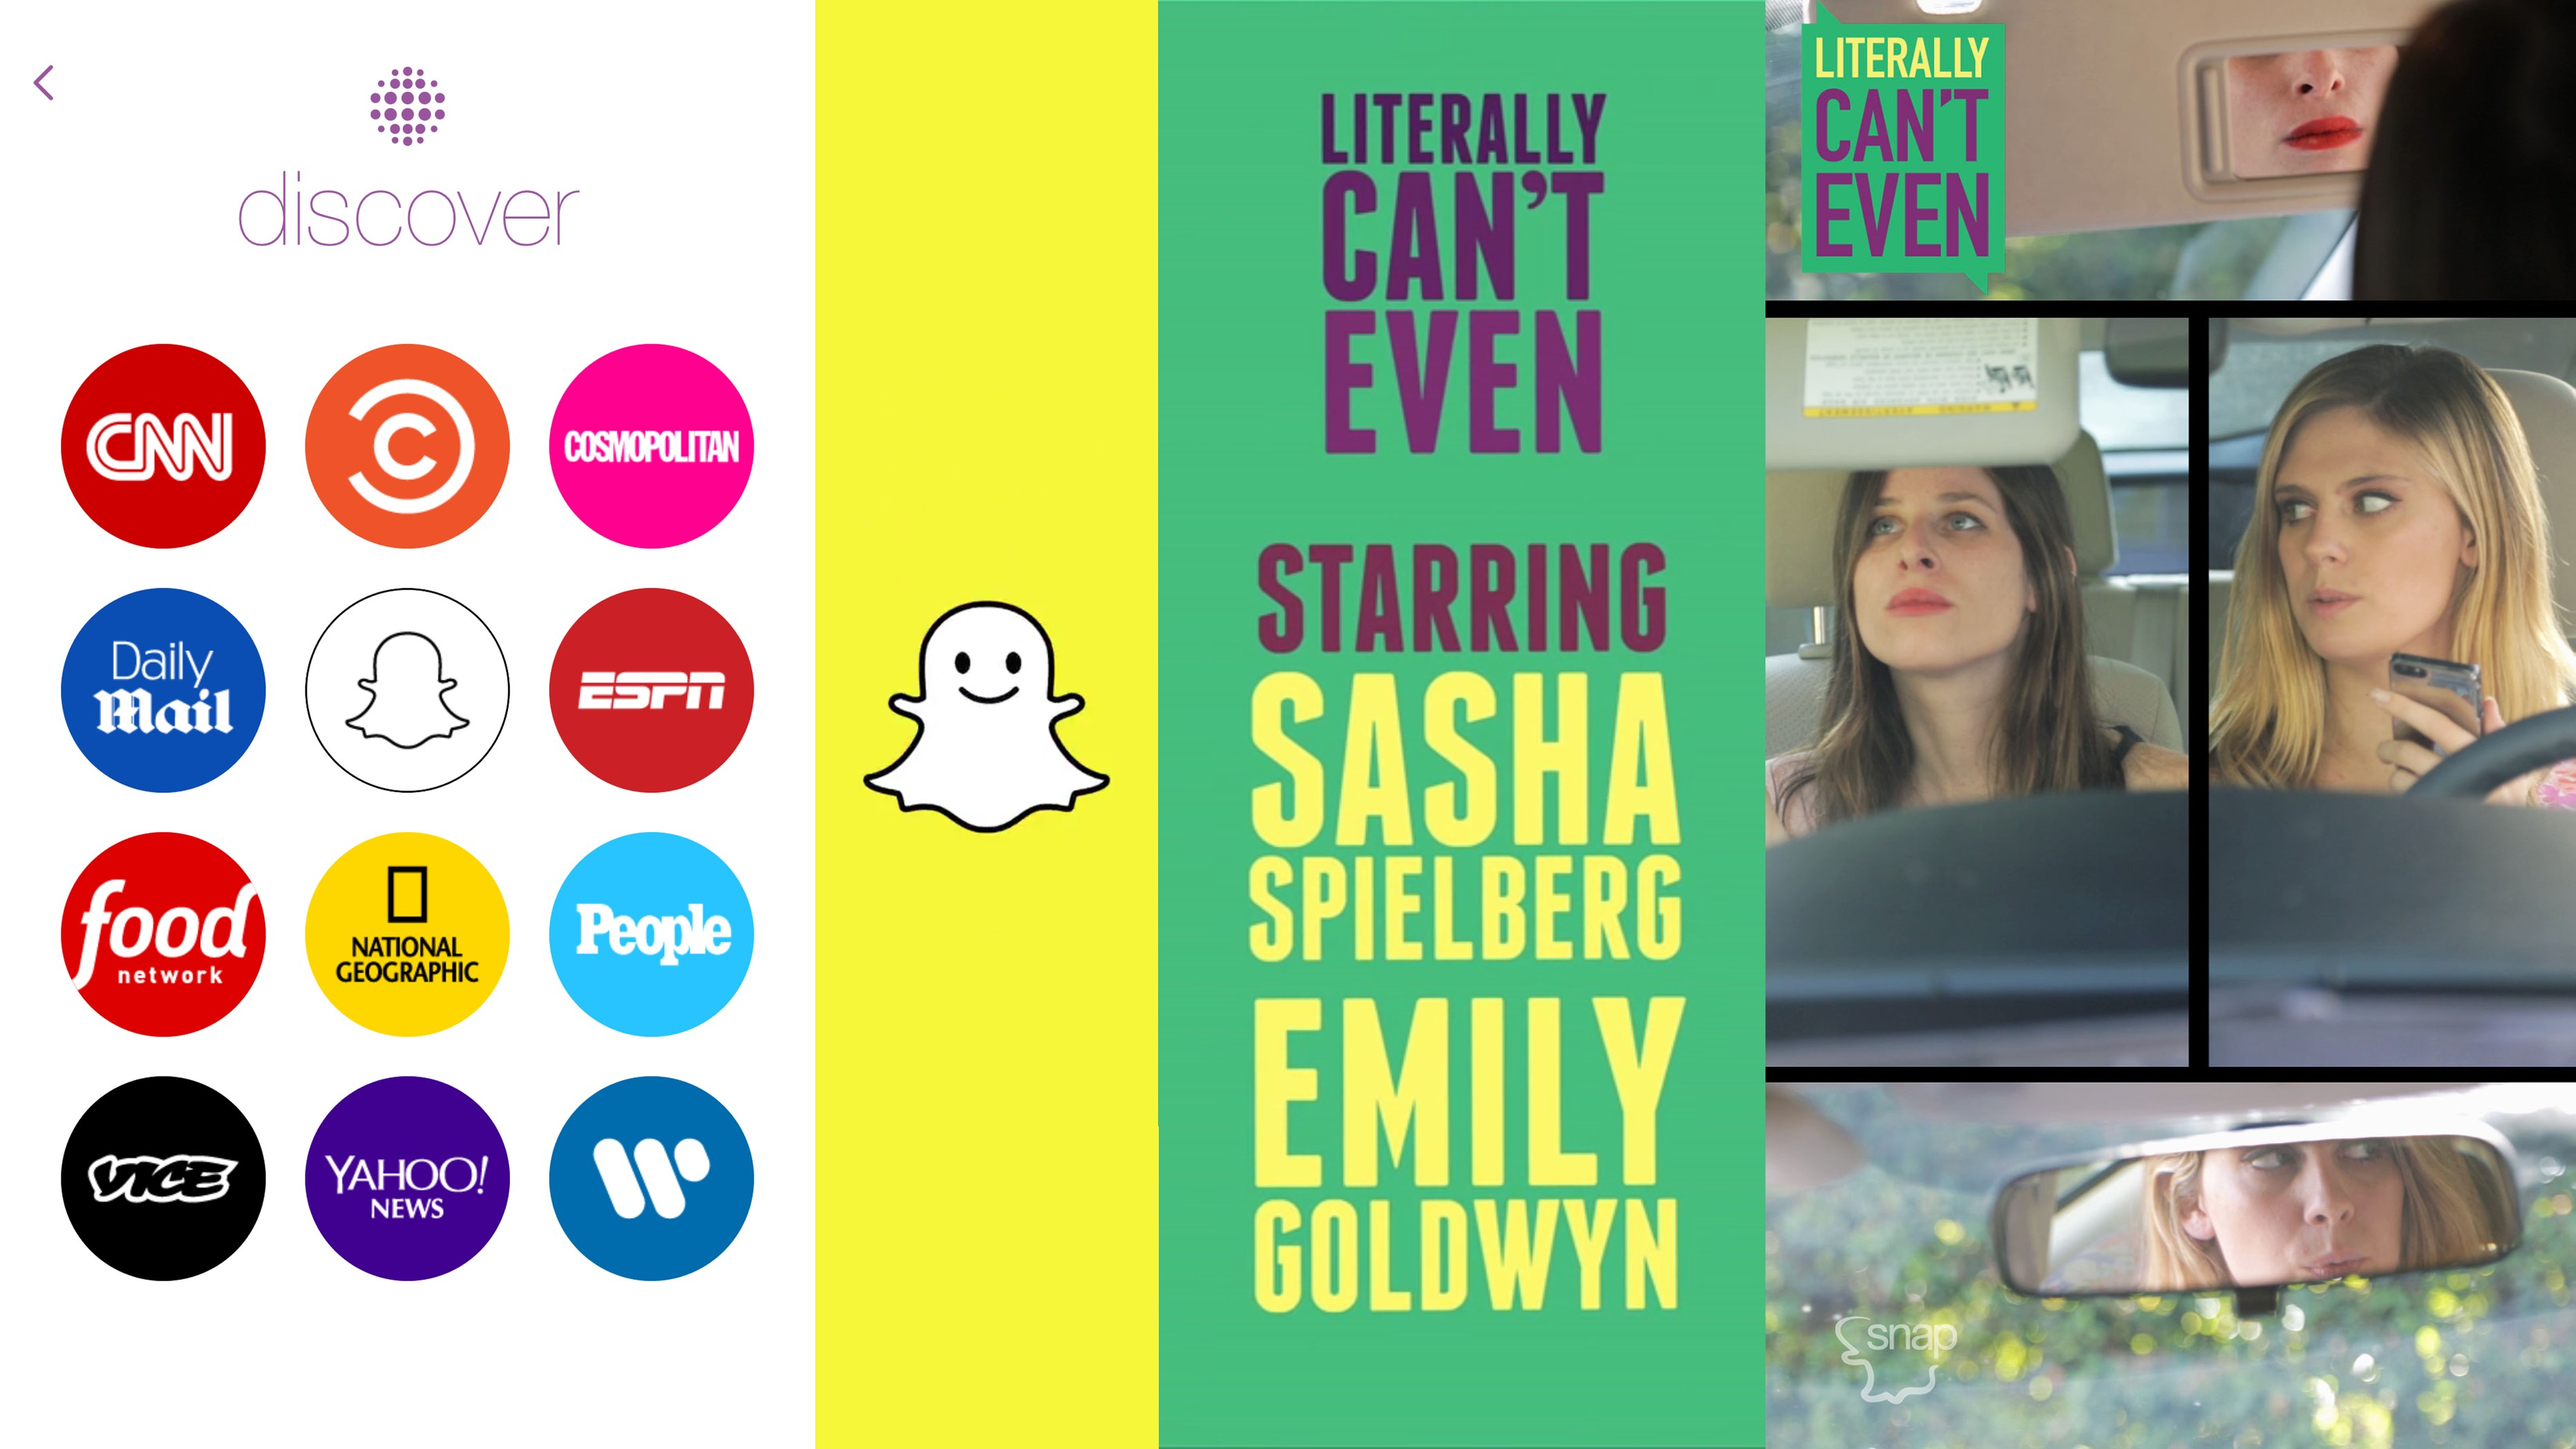 Snapchat Discover